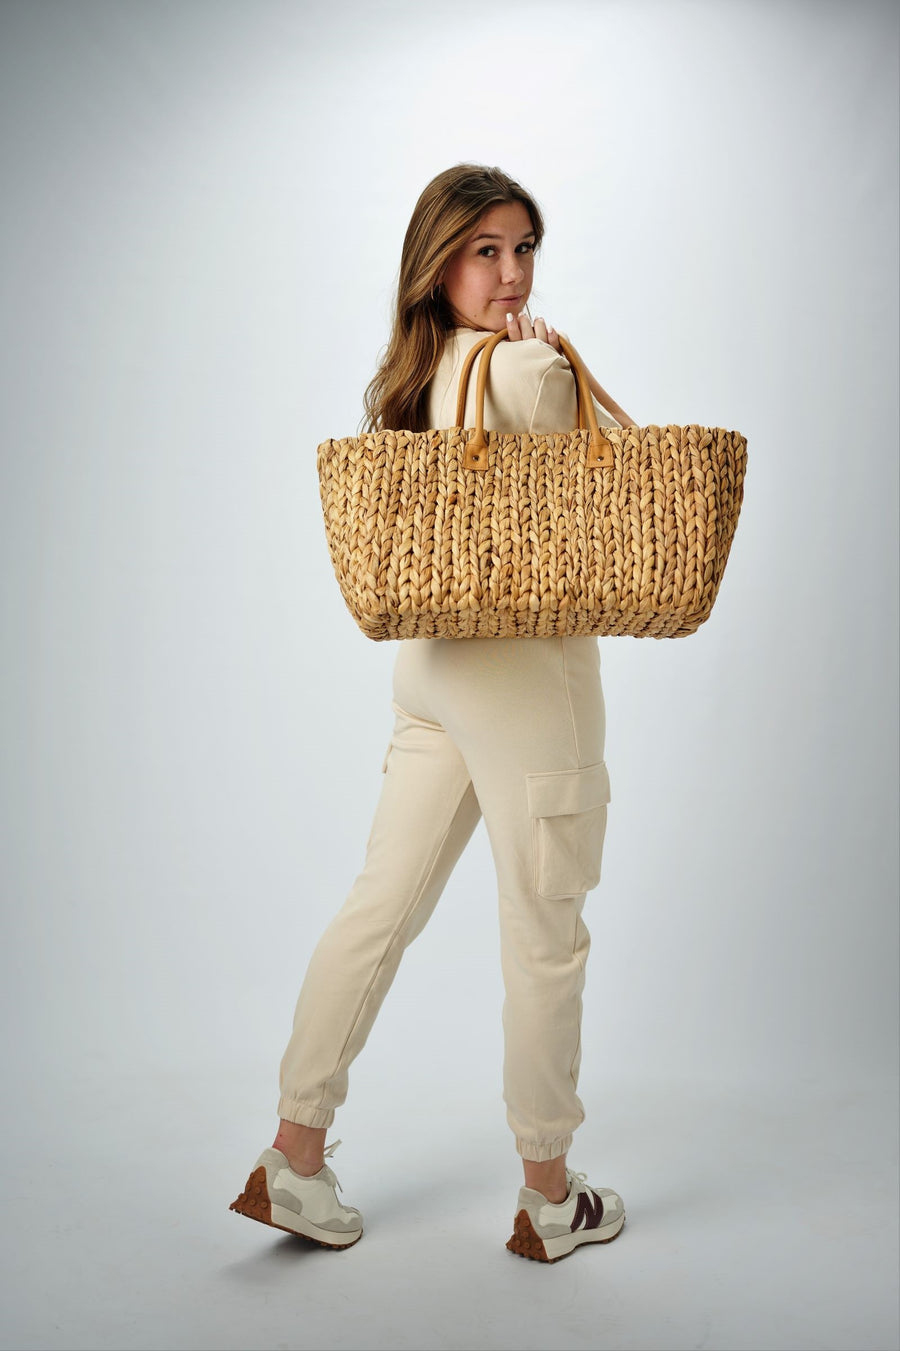 Person holding the Fullerton Straw Tote - a large natural hyacinth straw tote with matching leather handles.